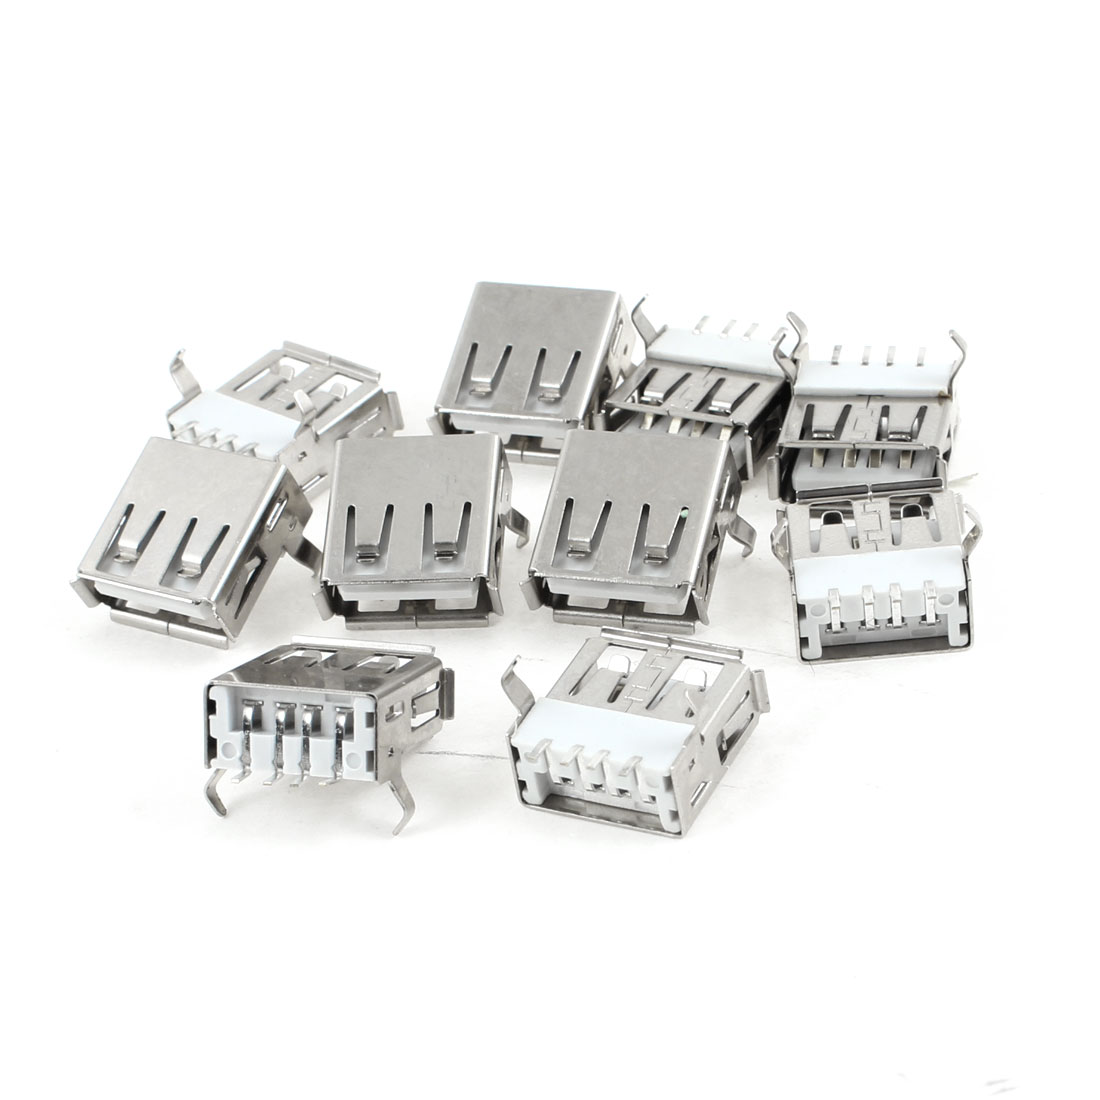 10 Pcs USB 2.0 Type A Right Angle 4-Pin SMT Female Jack Socket